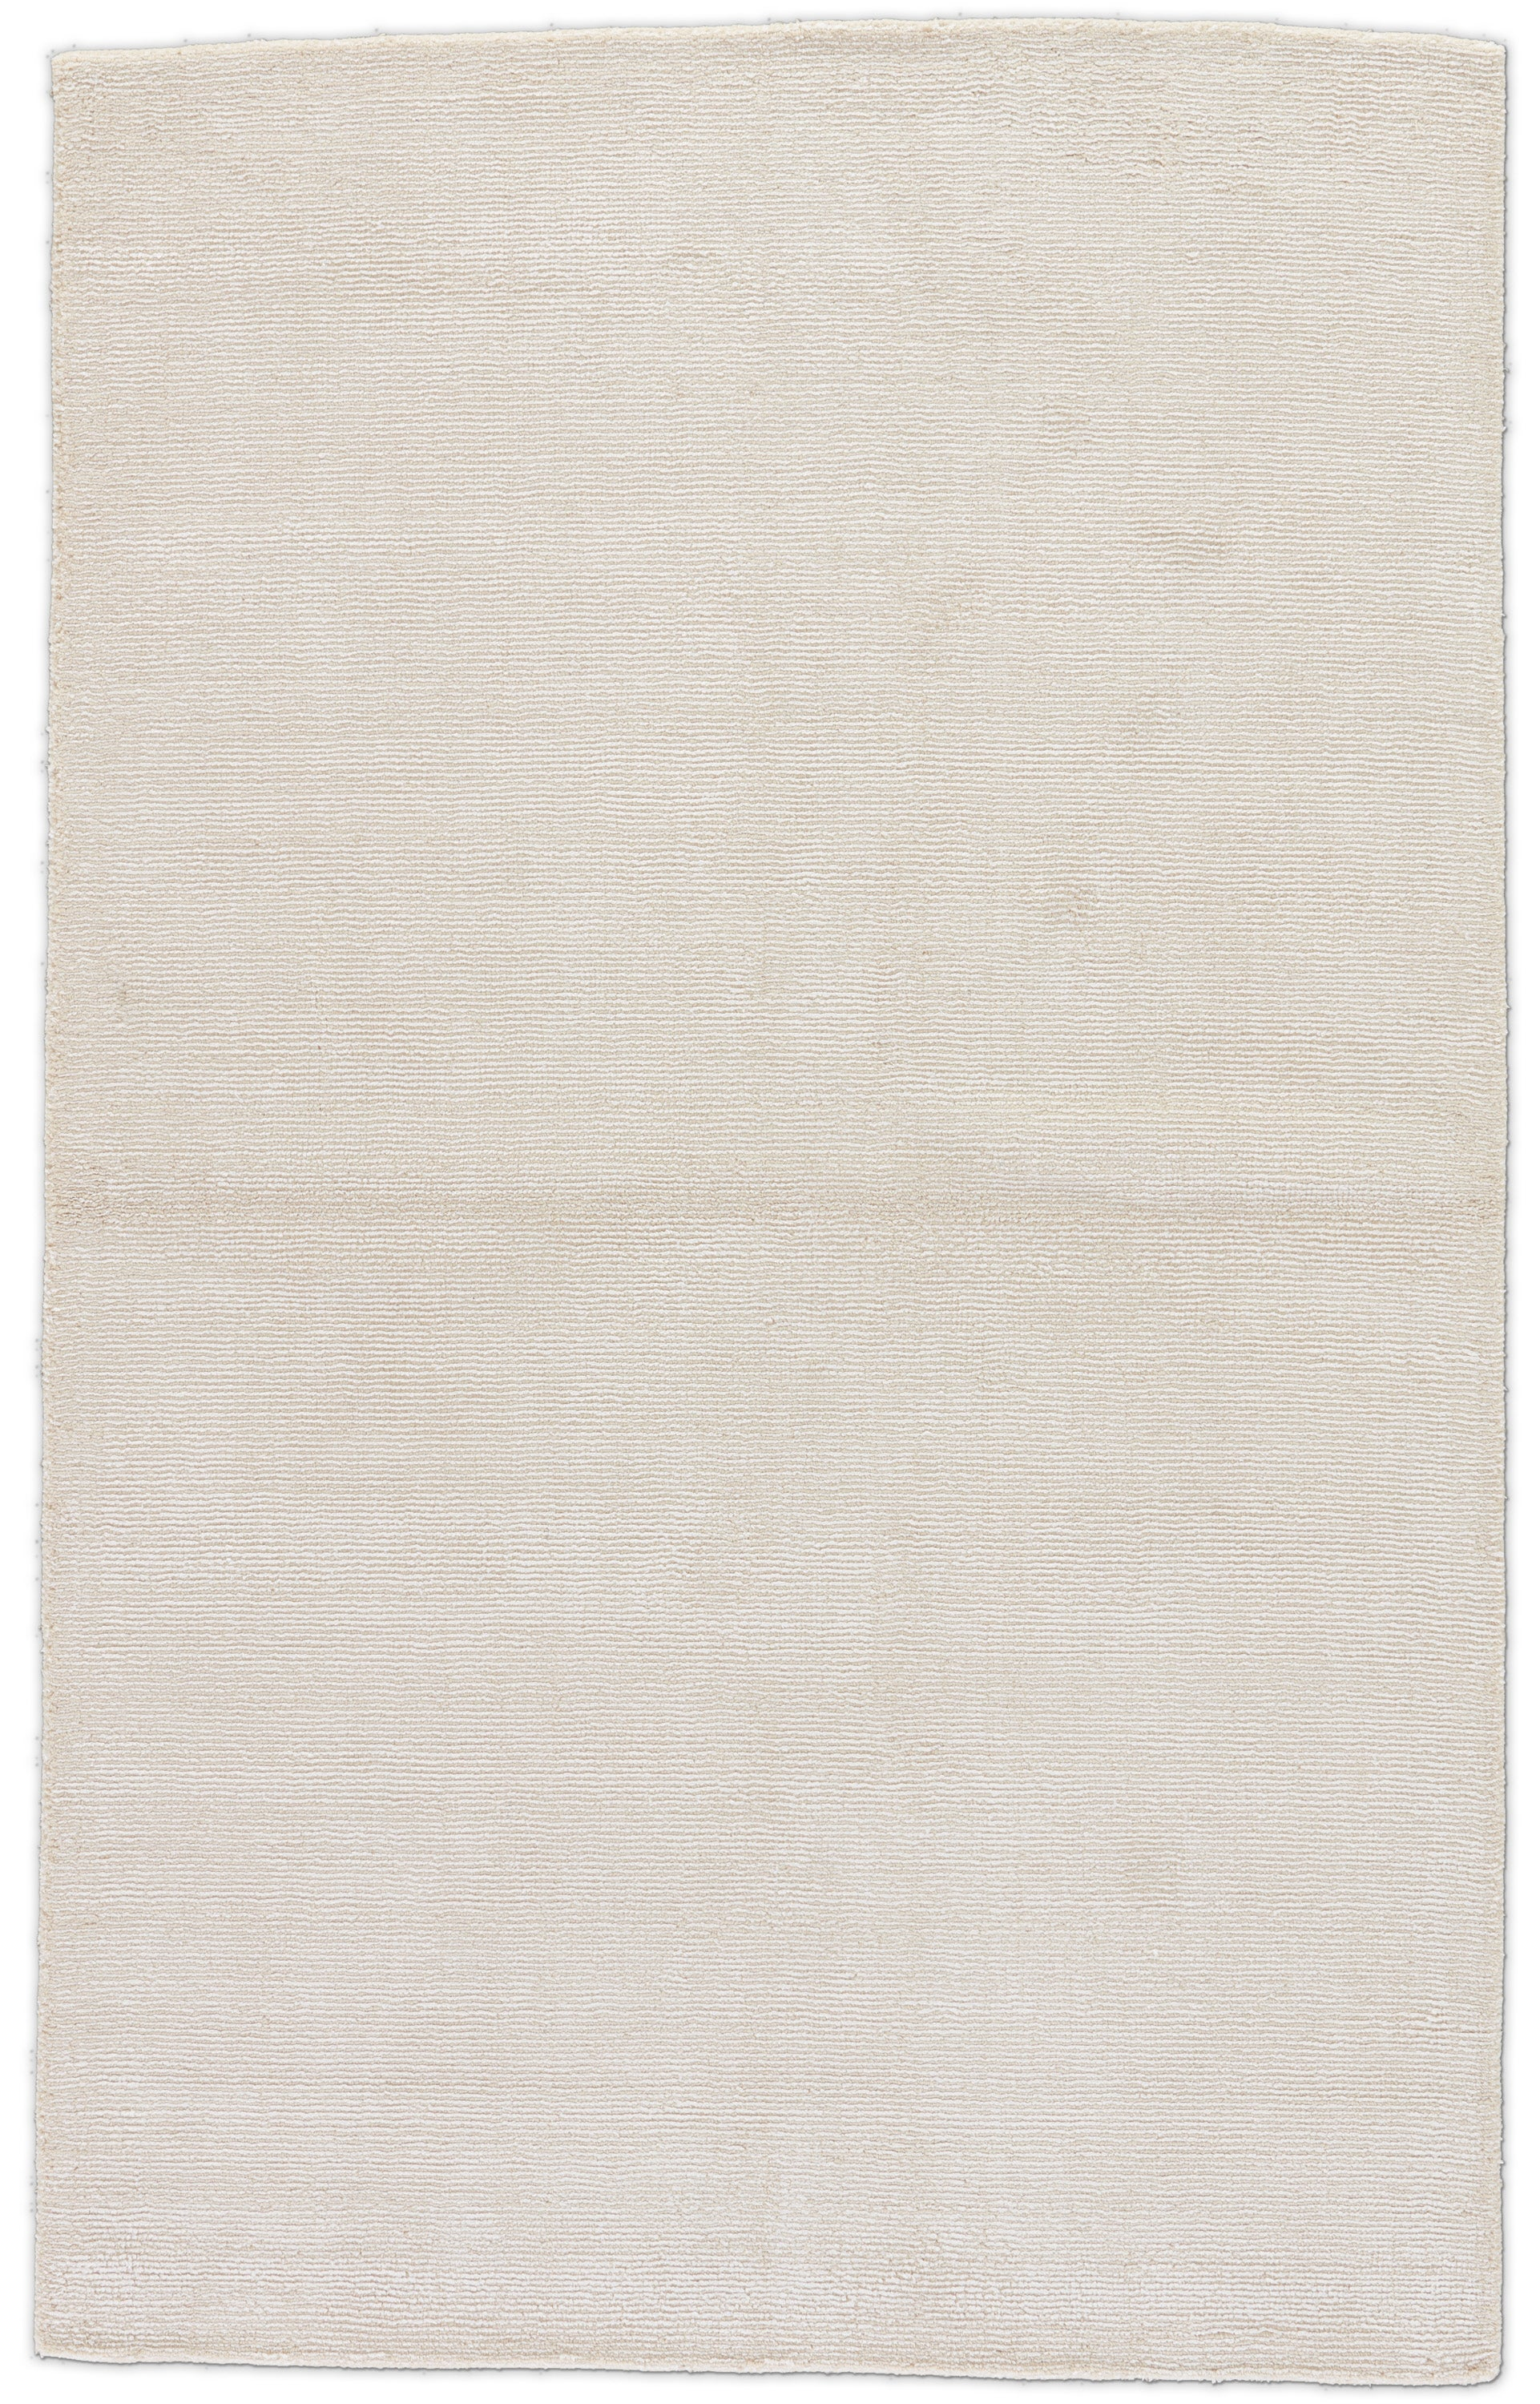 Rectangle White Solid Hand Loomed Blends Transitional recommended for Kitchen, Bedroom, Bathroom, Dining Room, Office, Hallway, Living Room